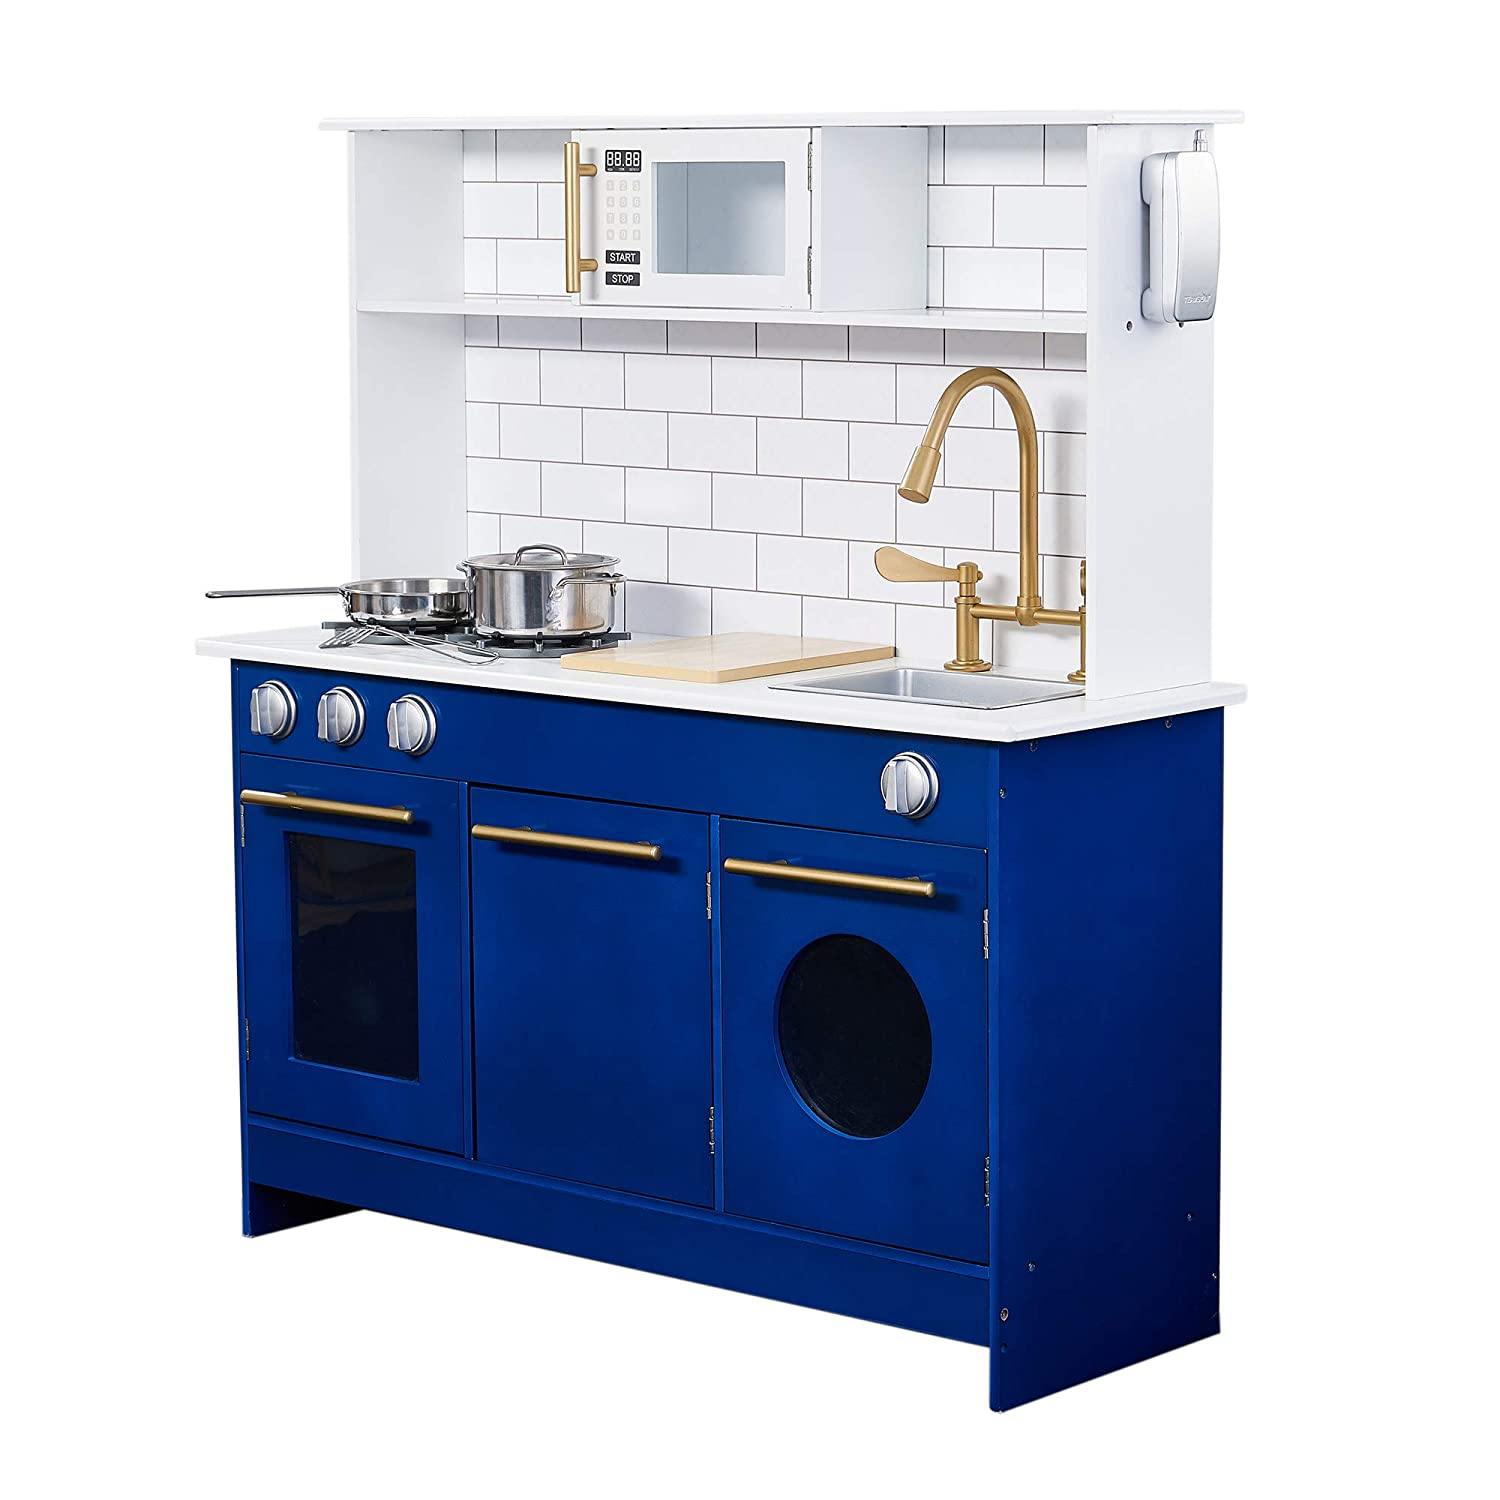 Teamson Kids TD-12681B Little Chef Berlin Modern Play Kitchen, White/Blue